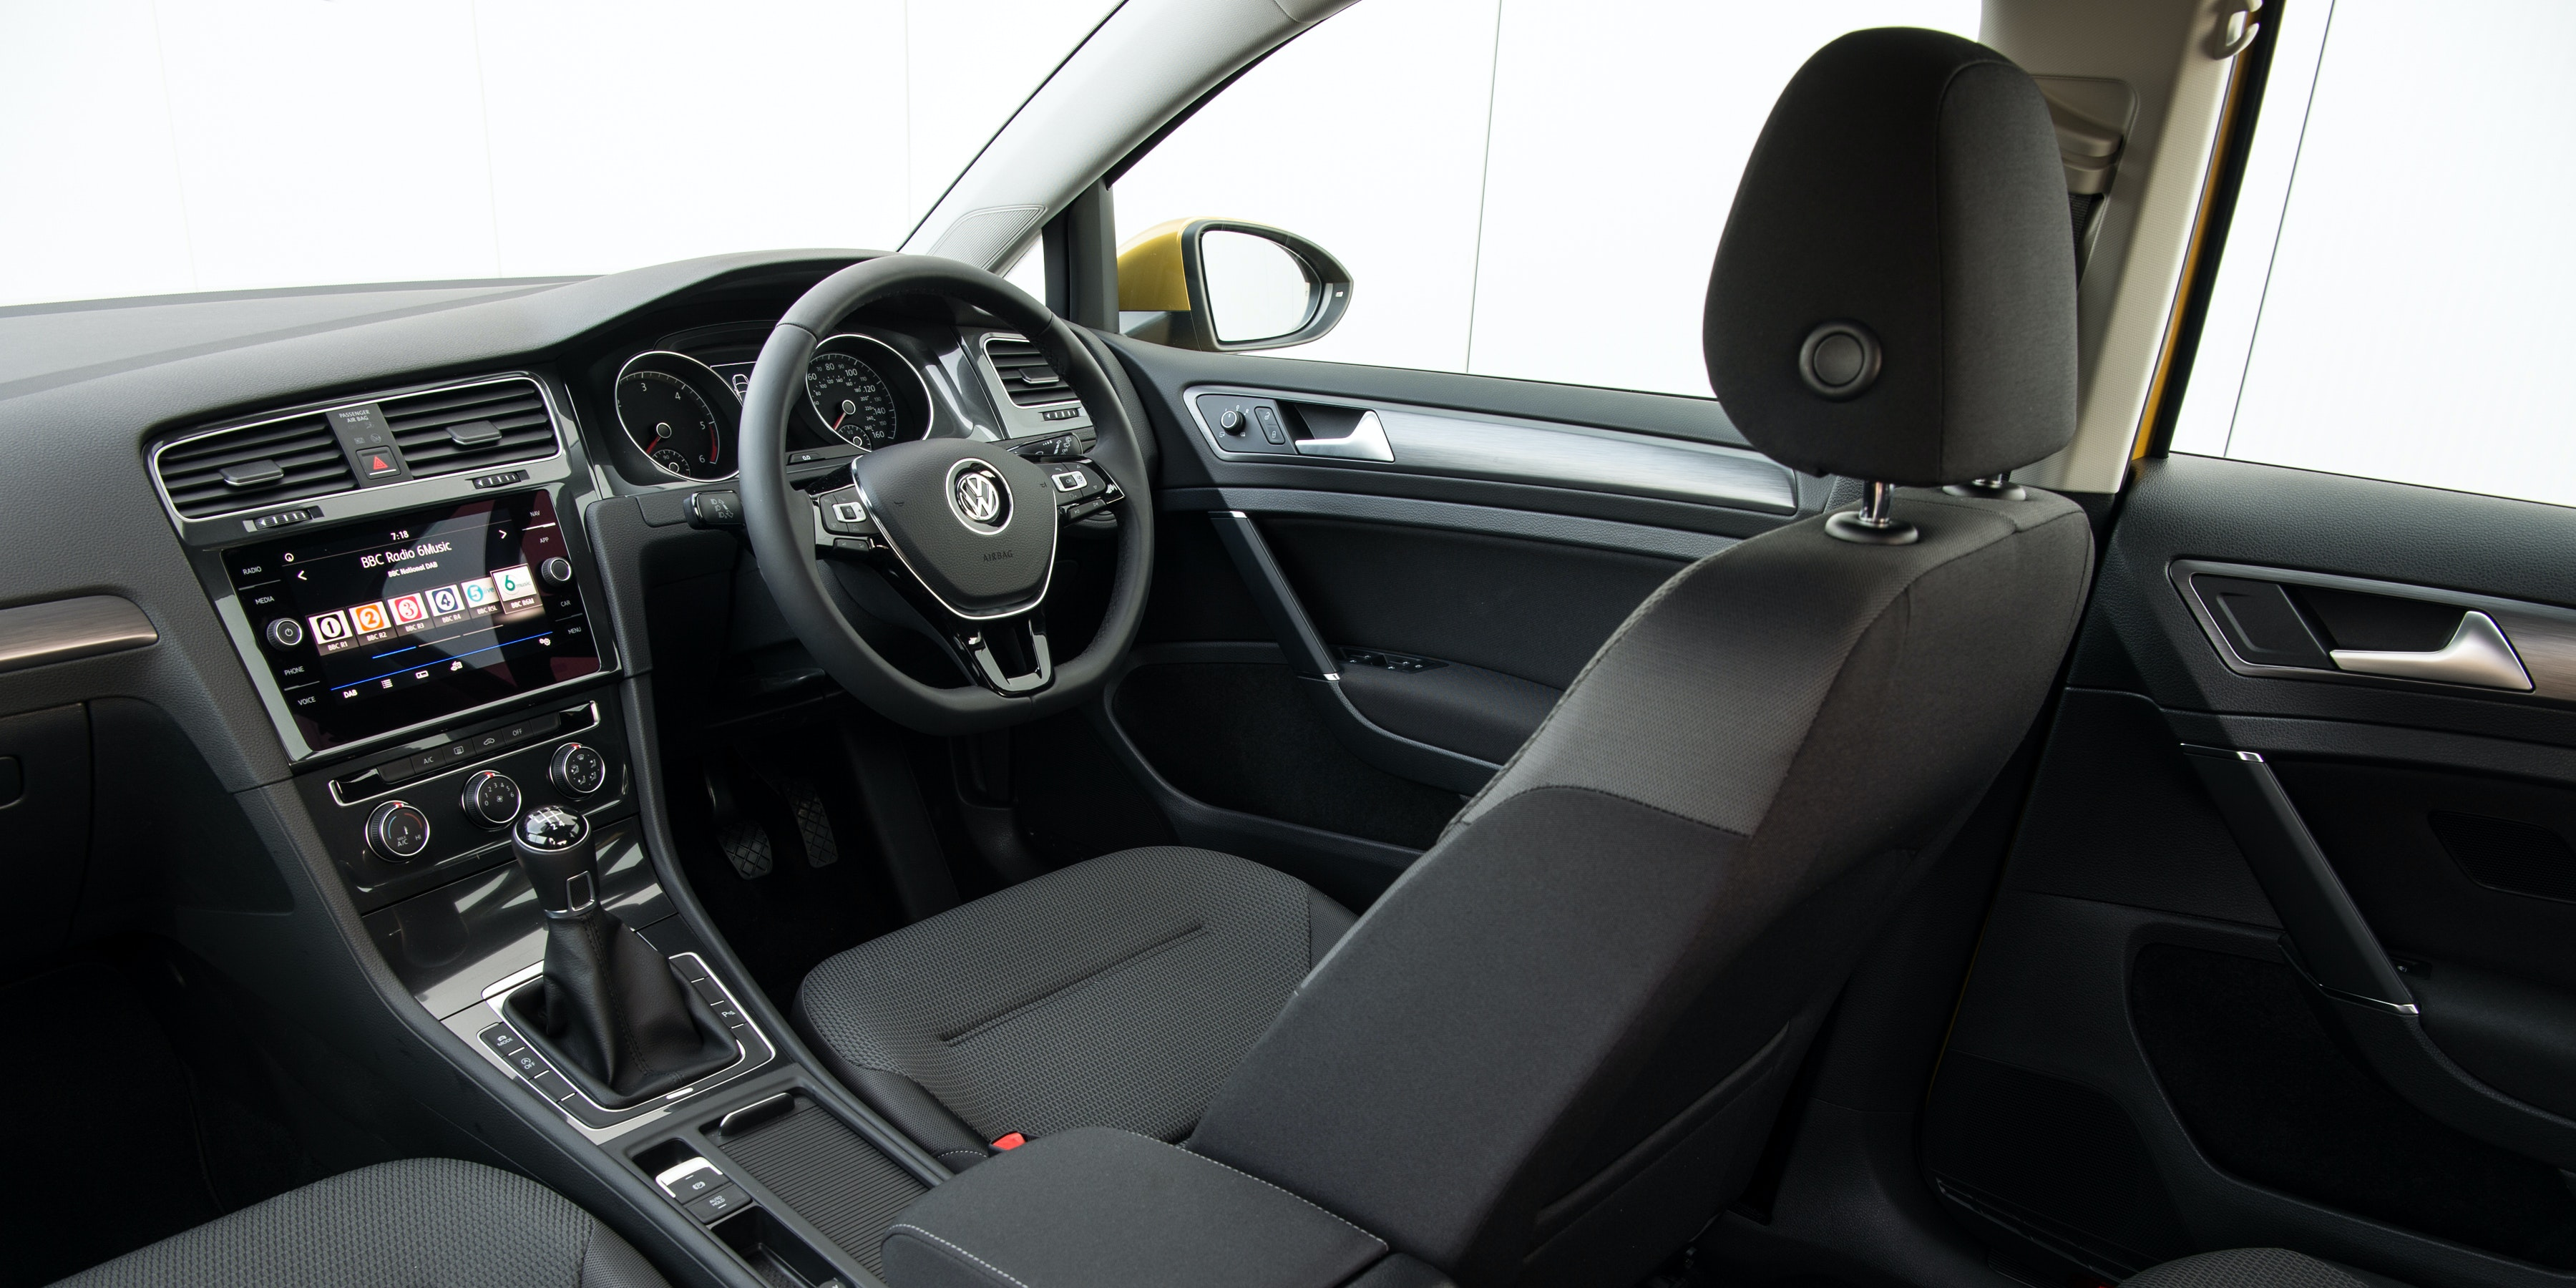 Marvelous In Terms Of Quality, The Golf Is Ahead Of Most The Alternatives You Might  Consider